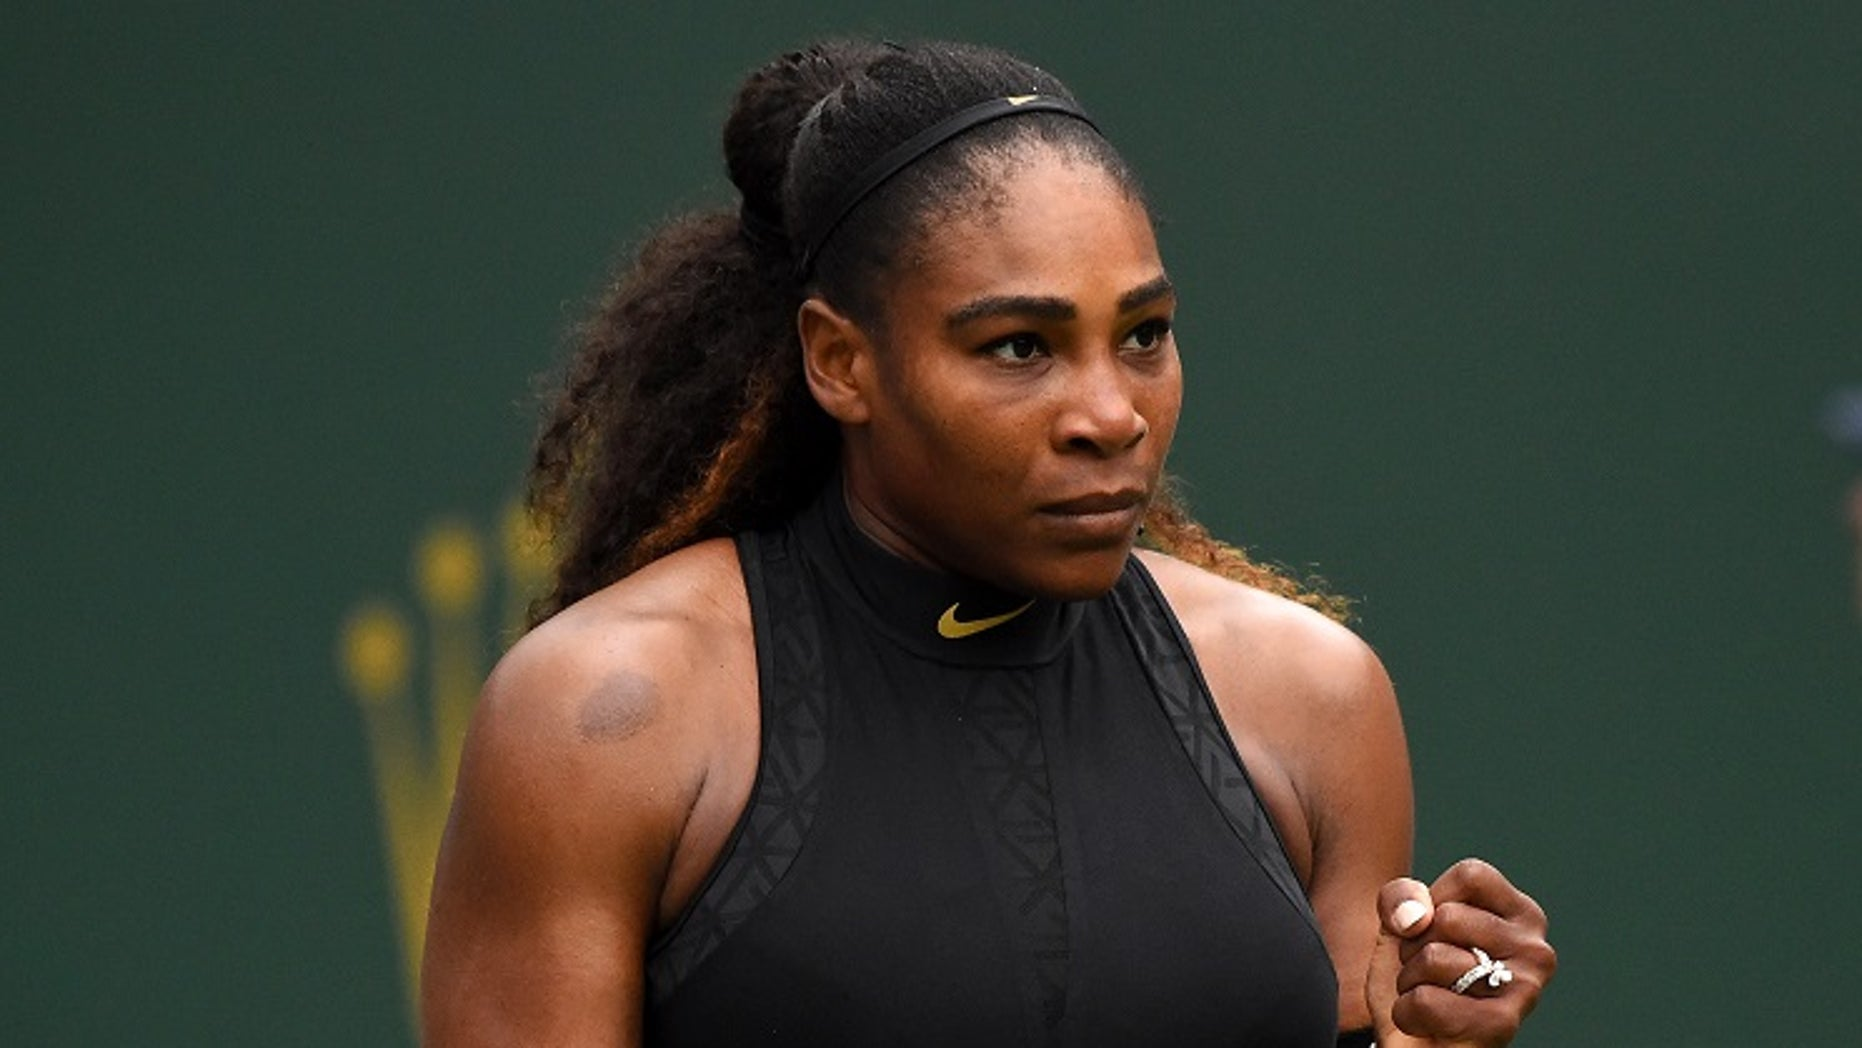 Tennis star Serena Williams is now ranked No. 453.